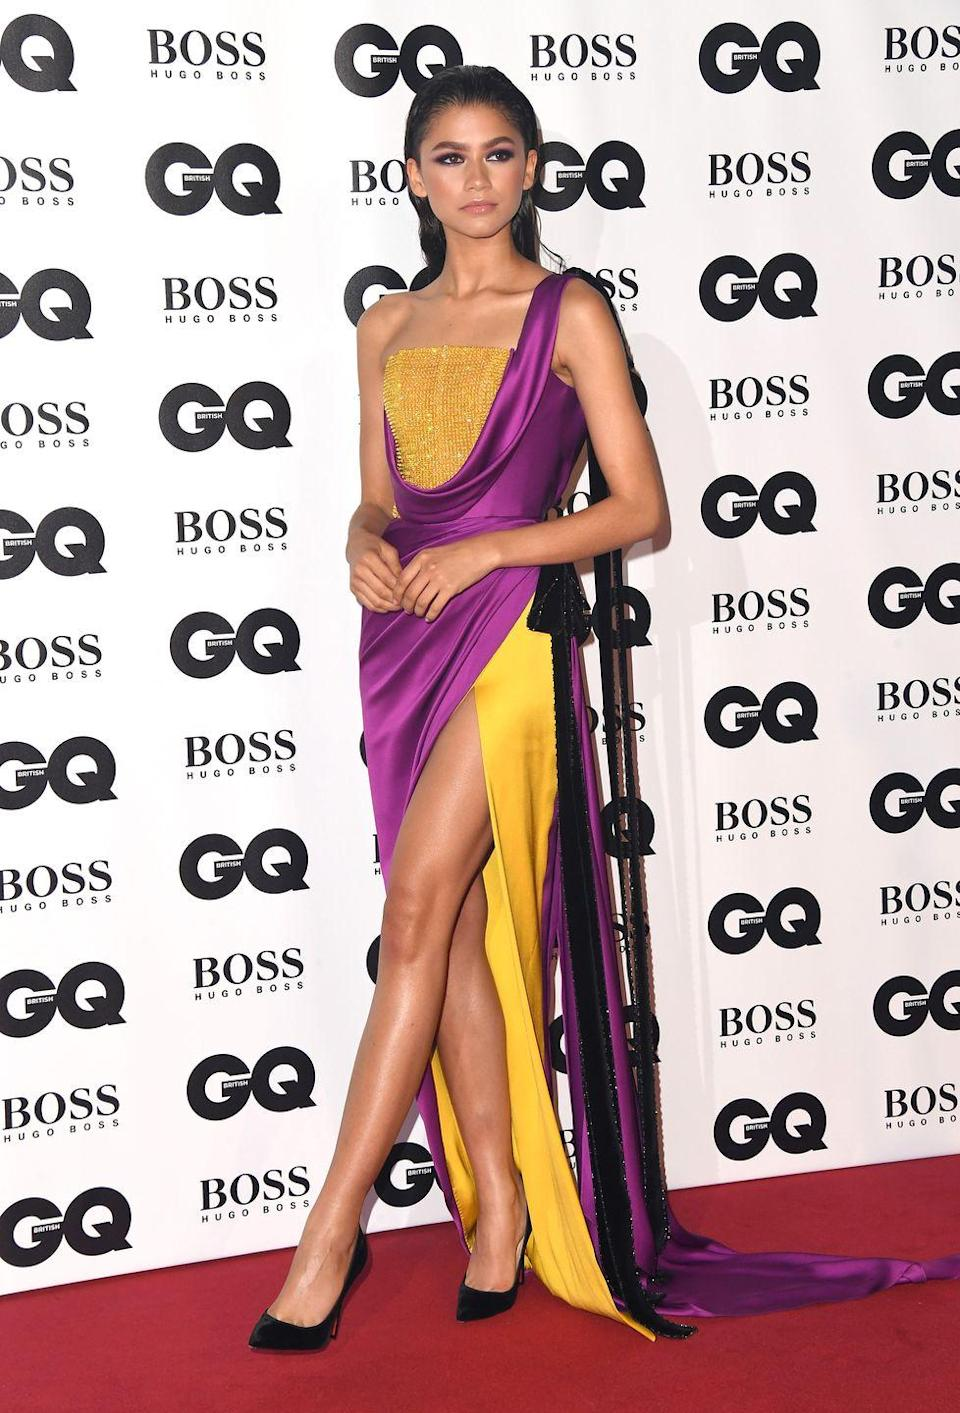 <p>She really turned heads at <em>GQ</em>'s 2018 Men of the Year Awards. This Ralph & Russo gown made her glitter in gold, and the dramatic purple drapery gave the dress some added elegance.</p>